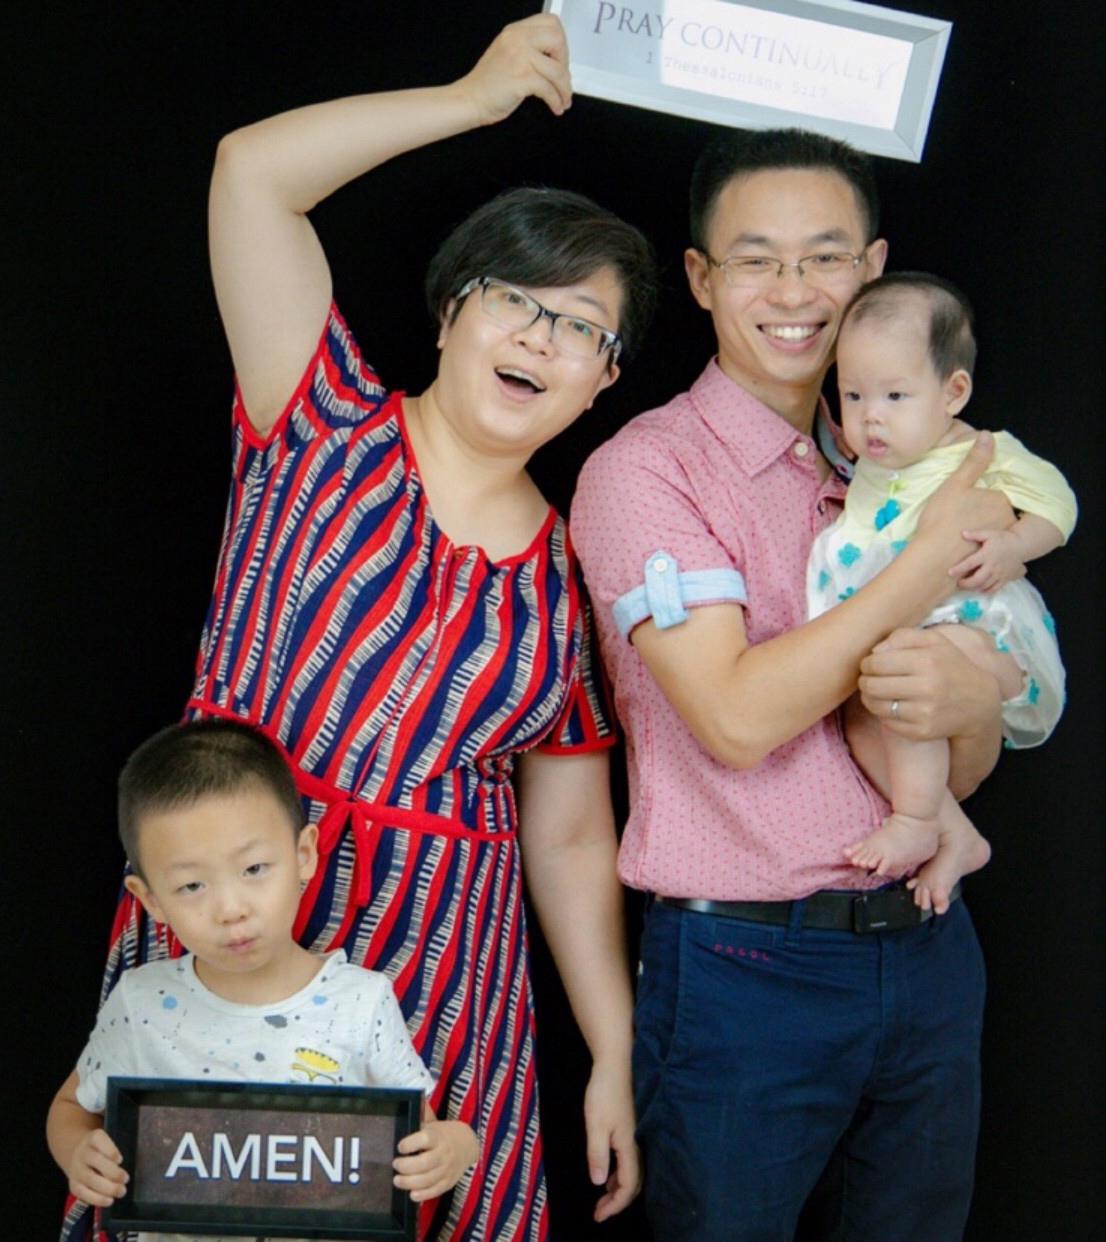 Westlake Legal Group QinDefu Chinese church leader sentenced to prison after being promised release, group says fox-news/world/world-regions/china fox-news/world/religion/persecutions fox-news/world/religion/christianity fox news fnc/world fnc Caleb Parke article 6046b9fb-b395-5c55-bdfb-72ed69a2100b